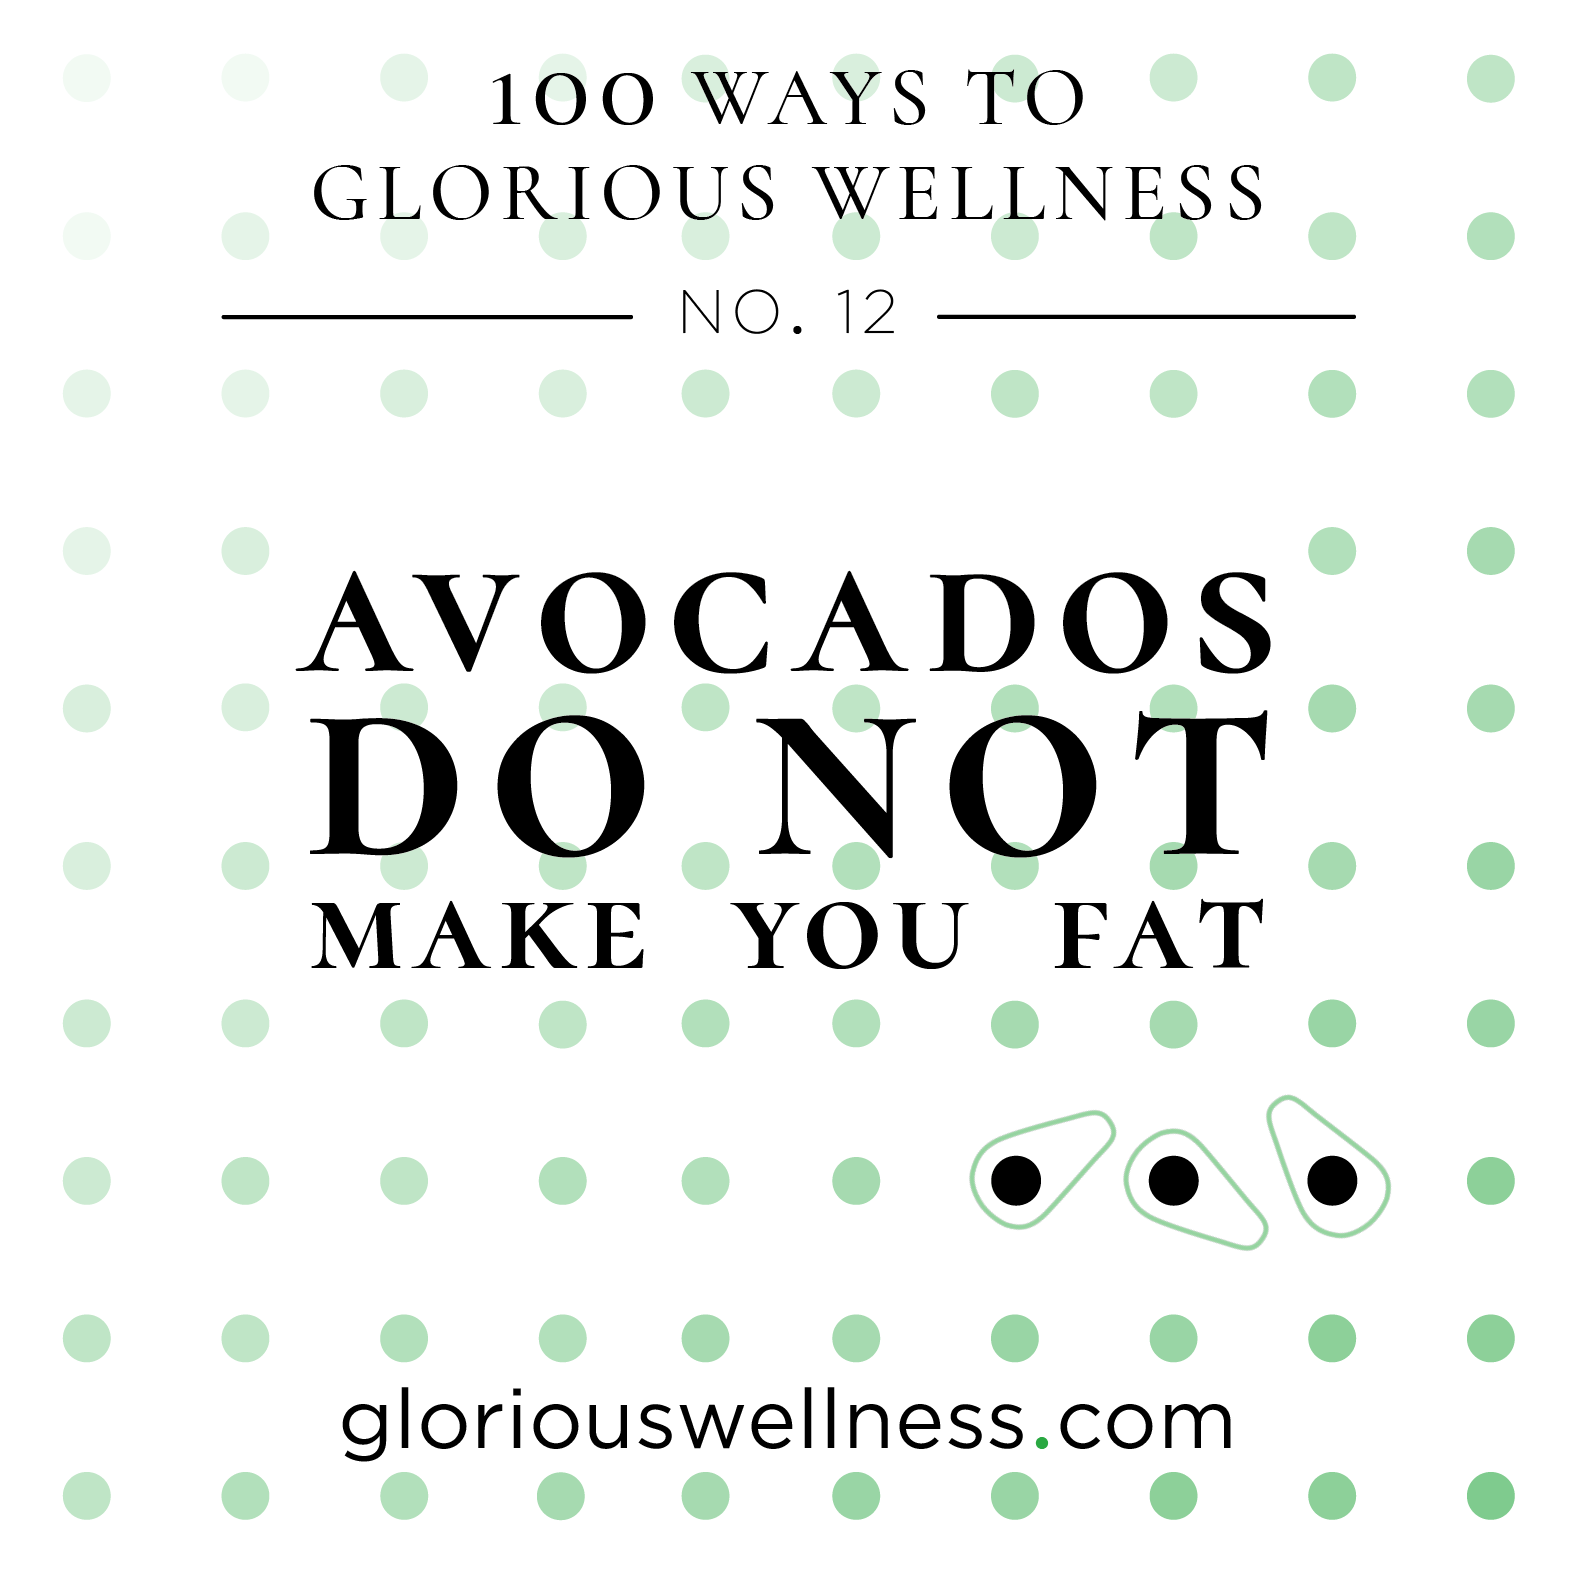 No. 12 - Avocados Do Not Make You Fat